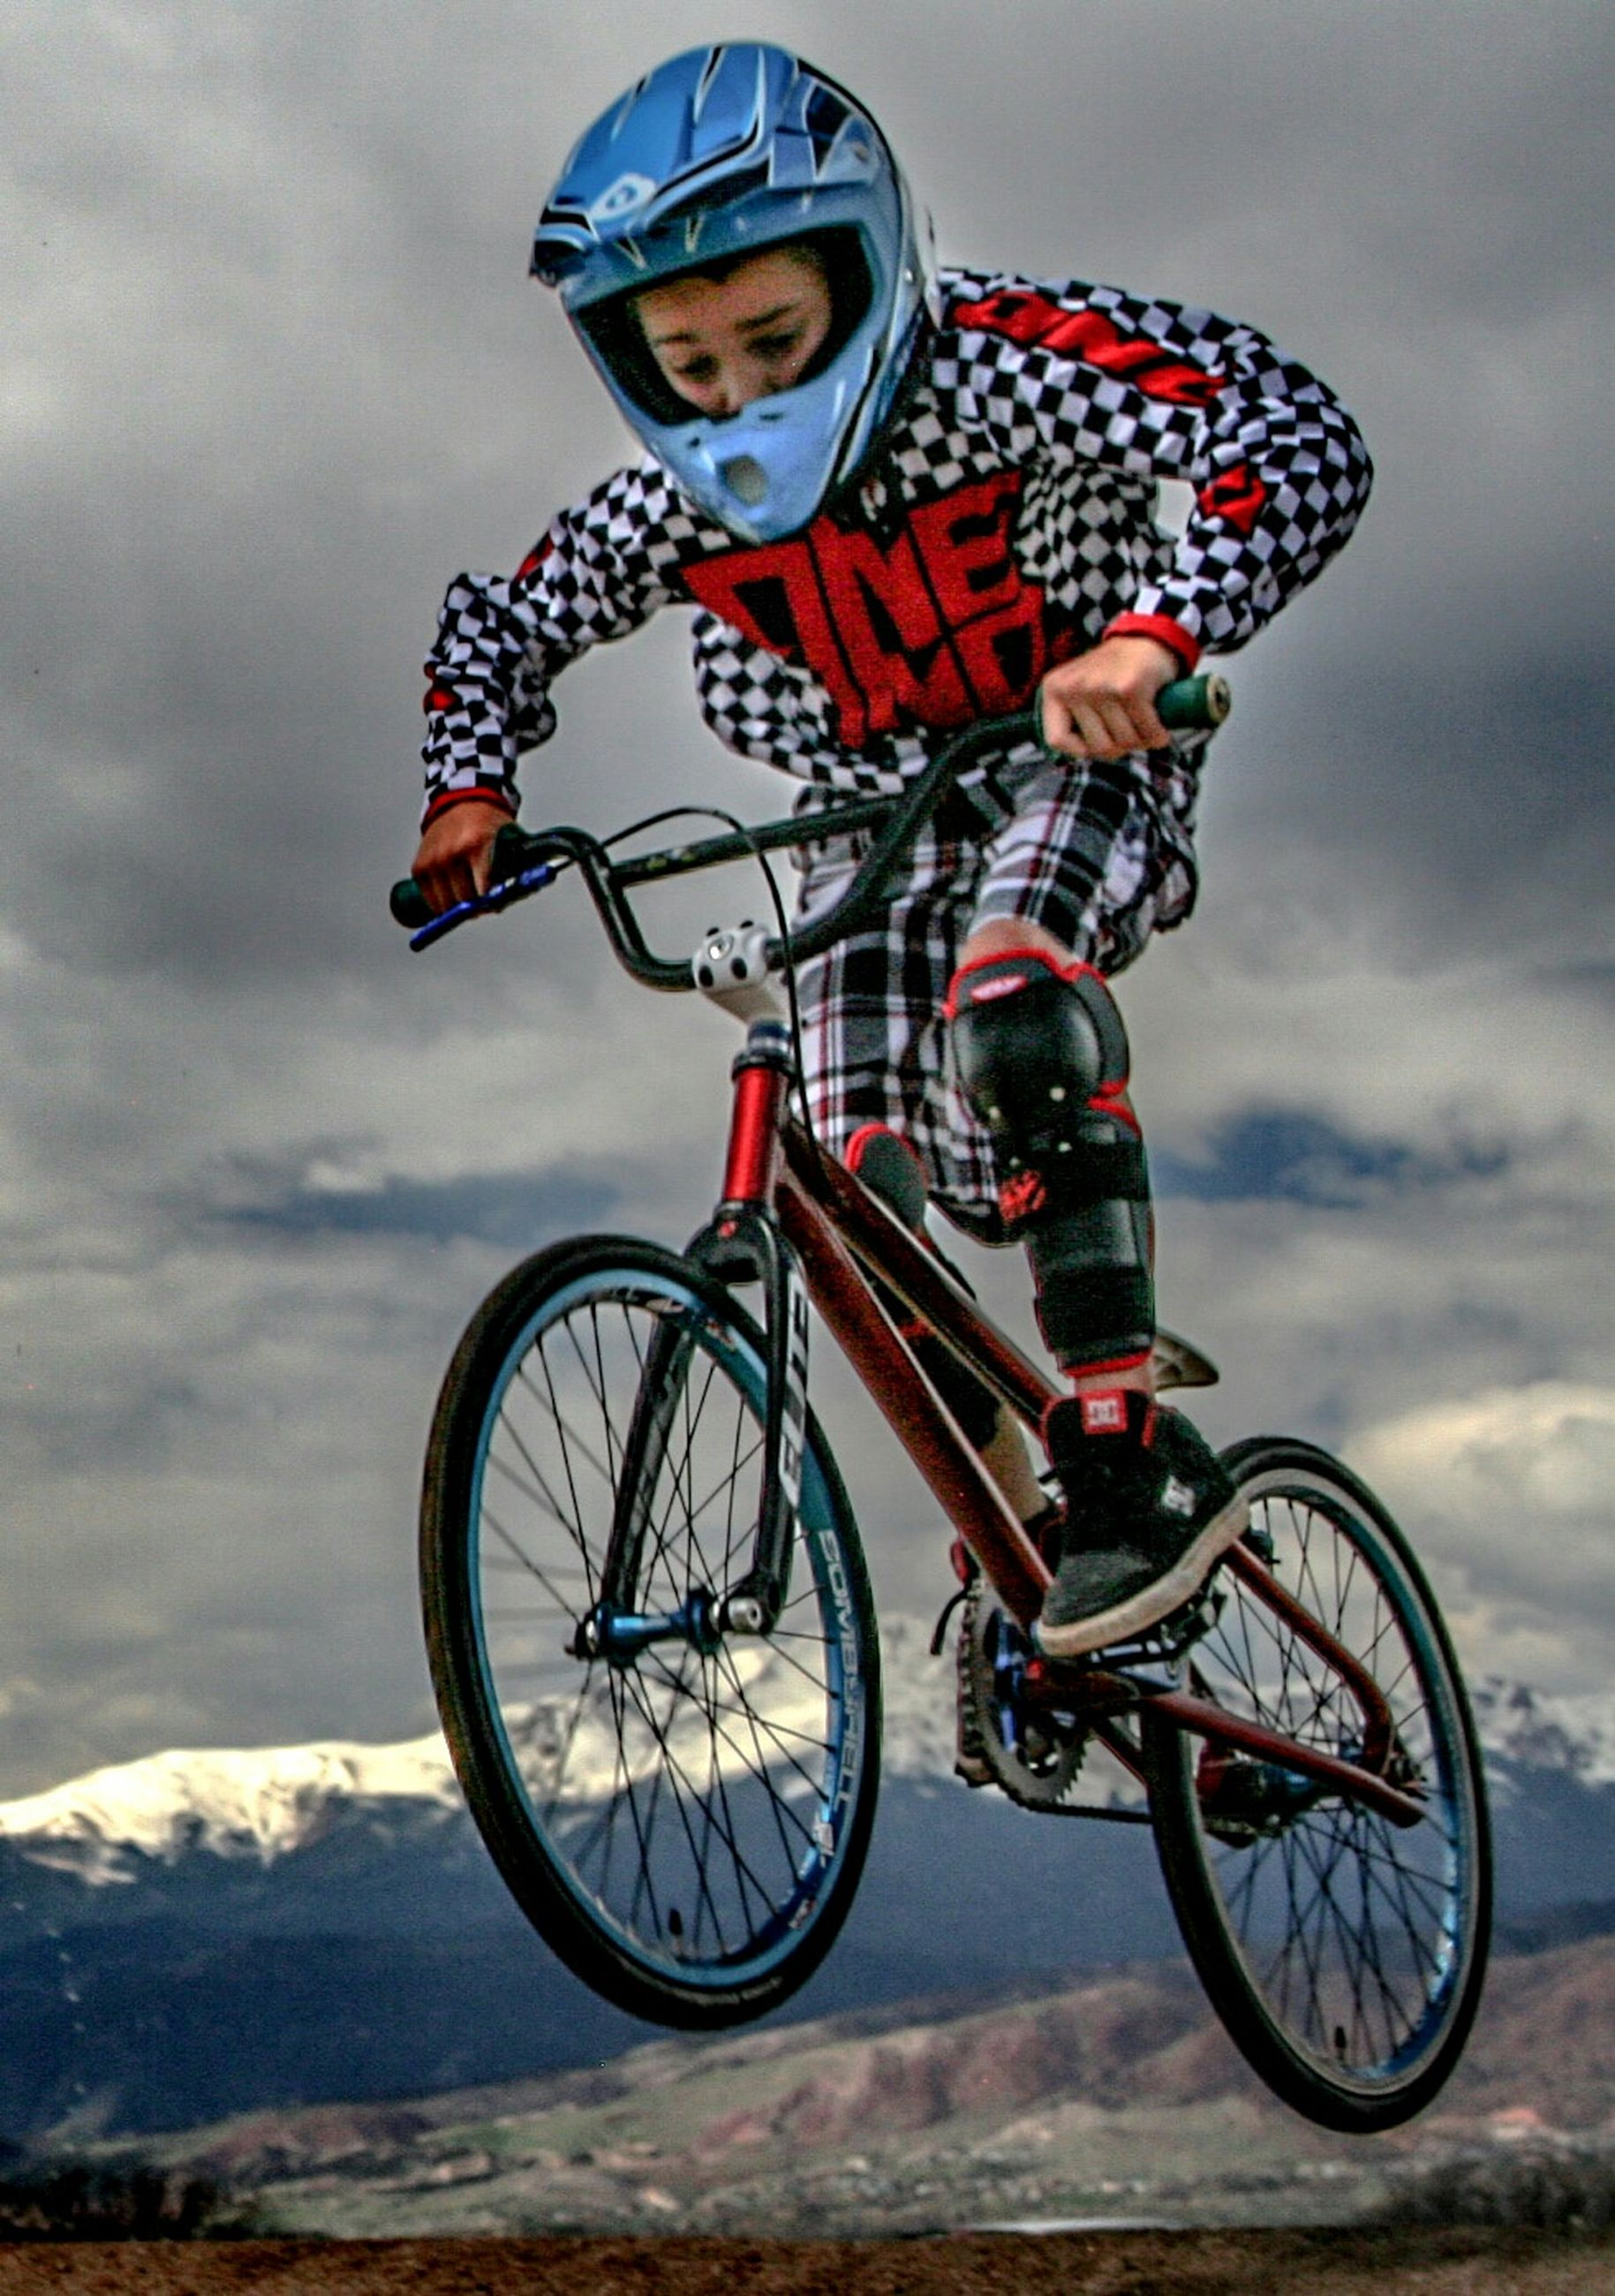 bicycle, mode of transport, transportation, land vehicle, sky, stationary, cloud - sky, travel, day, parking, wheel, low angle view, side view, outdoors, mountain, parked, red, riding, cloudy